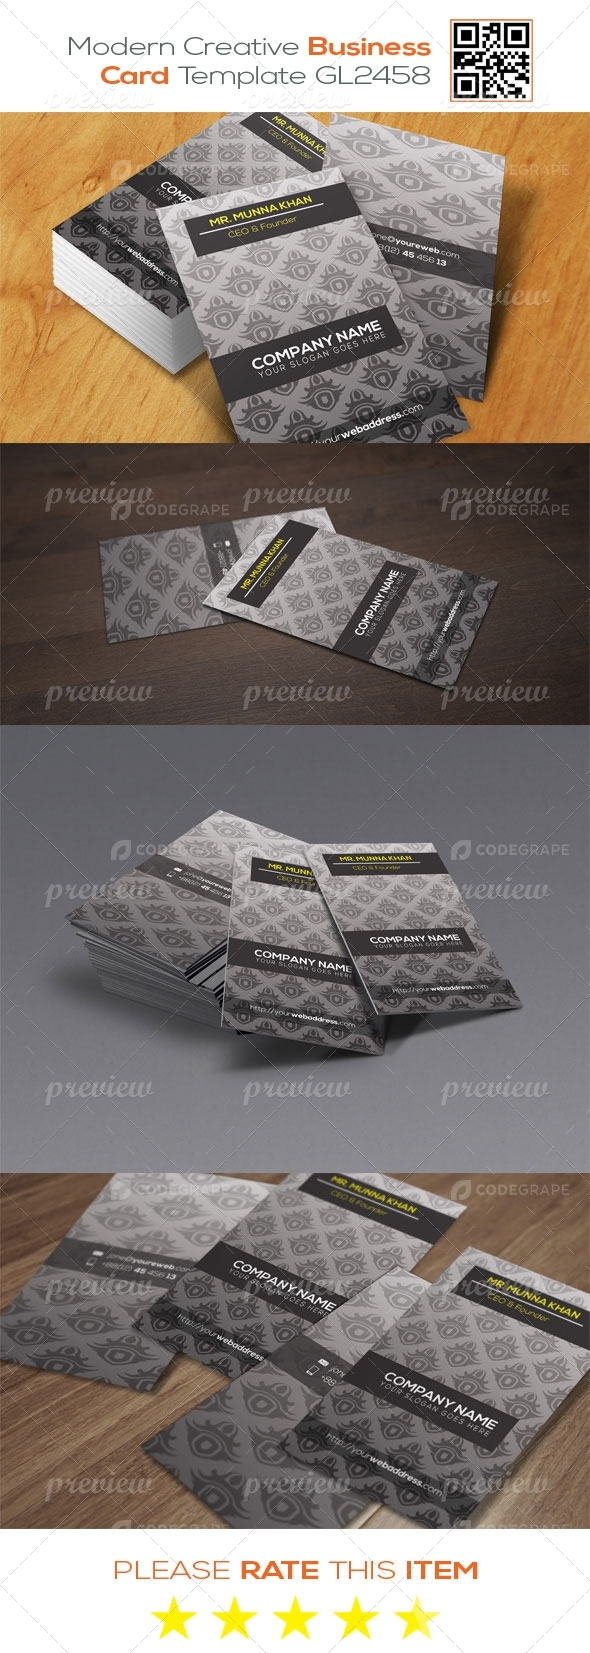 Modern  Creative Business Card Template GL2458